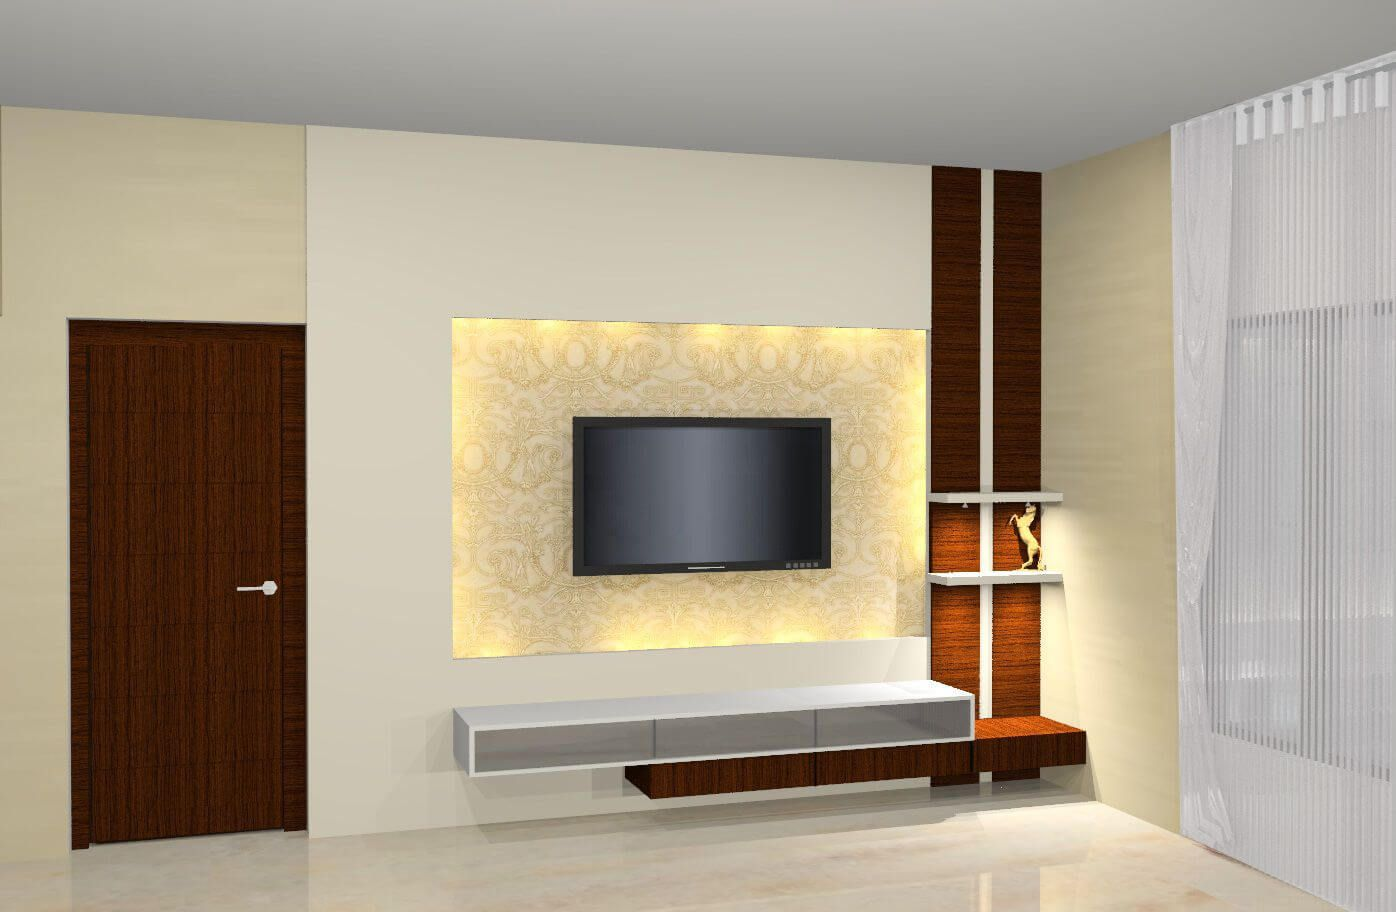 35 Stylish Led Tv Wall Panel Designs For Your Living Room Wall Tv Unit Design Modern Tv Wall Units Wall Unit Designs